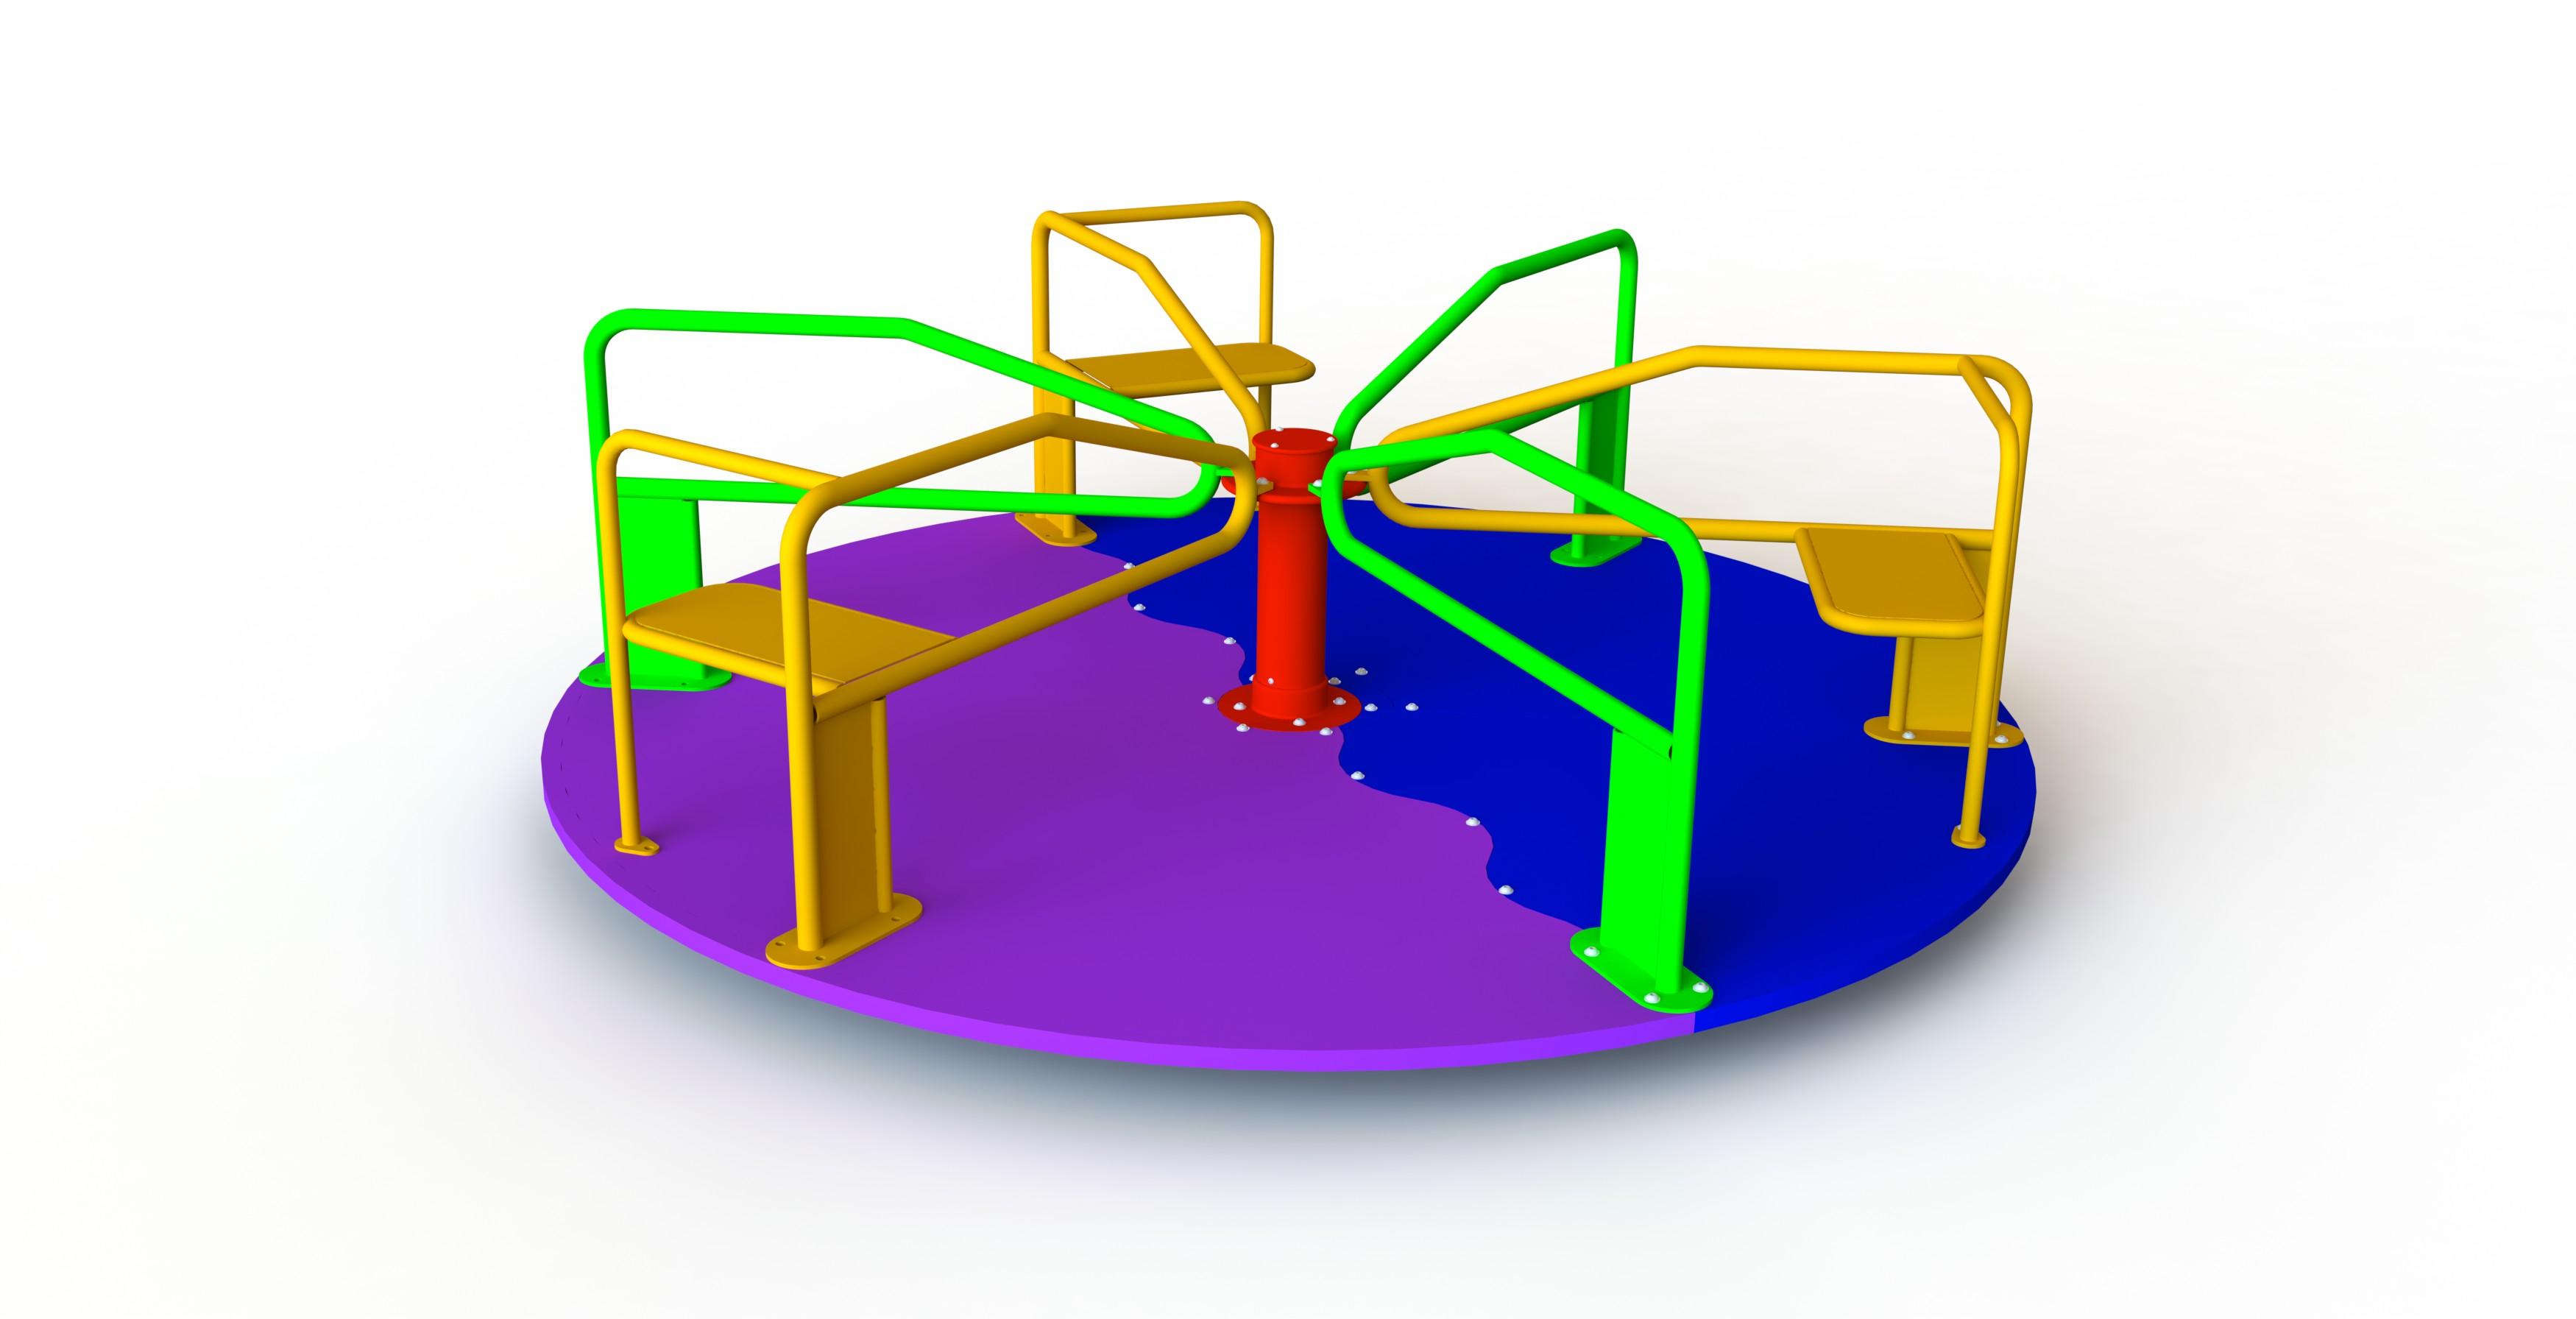 GL Jones Playgrounds - 2.4m diameter 3 Seat Whirling Platform